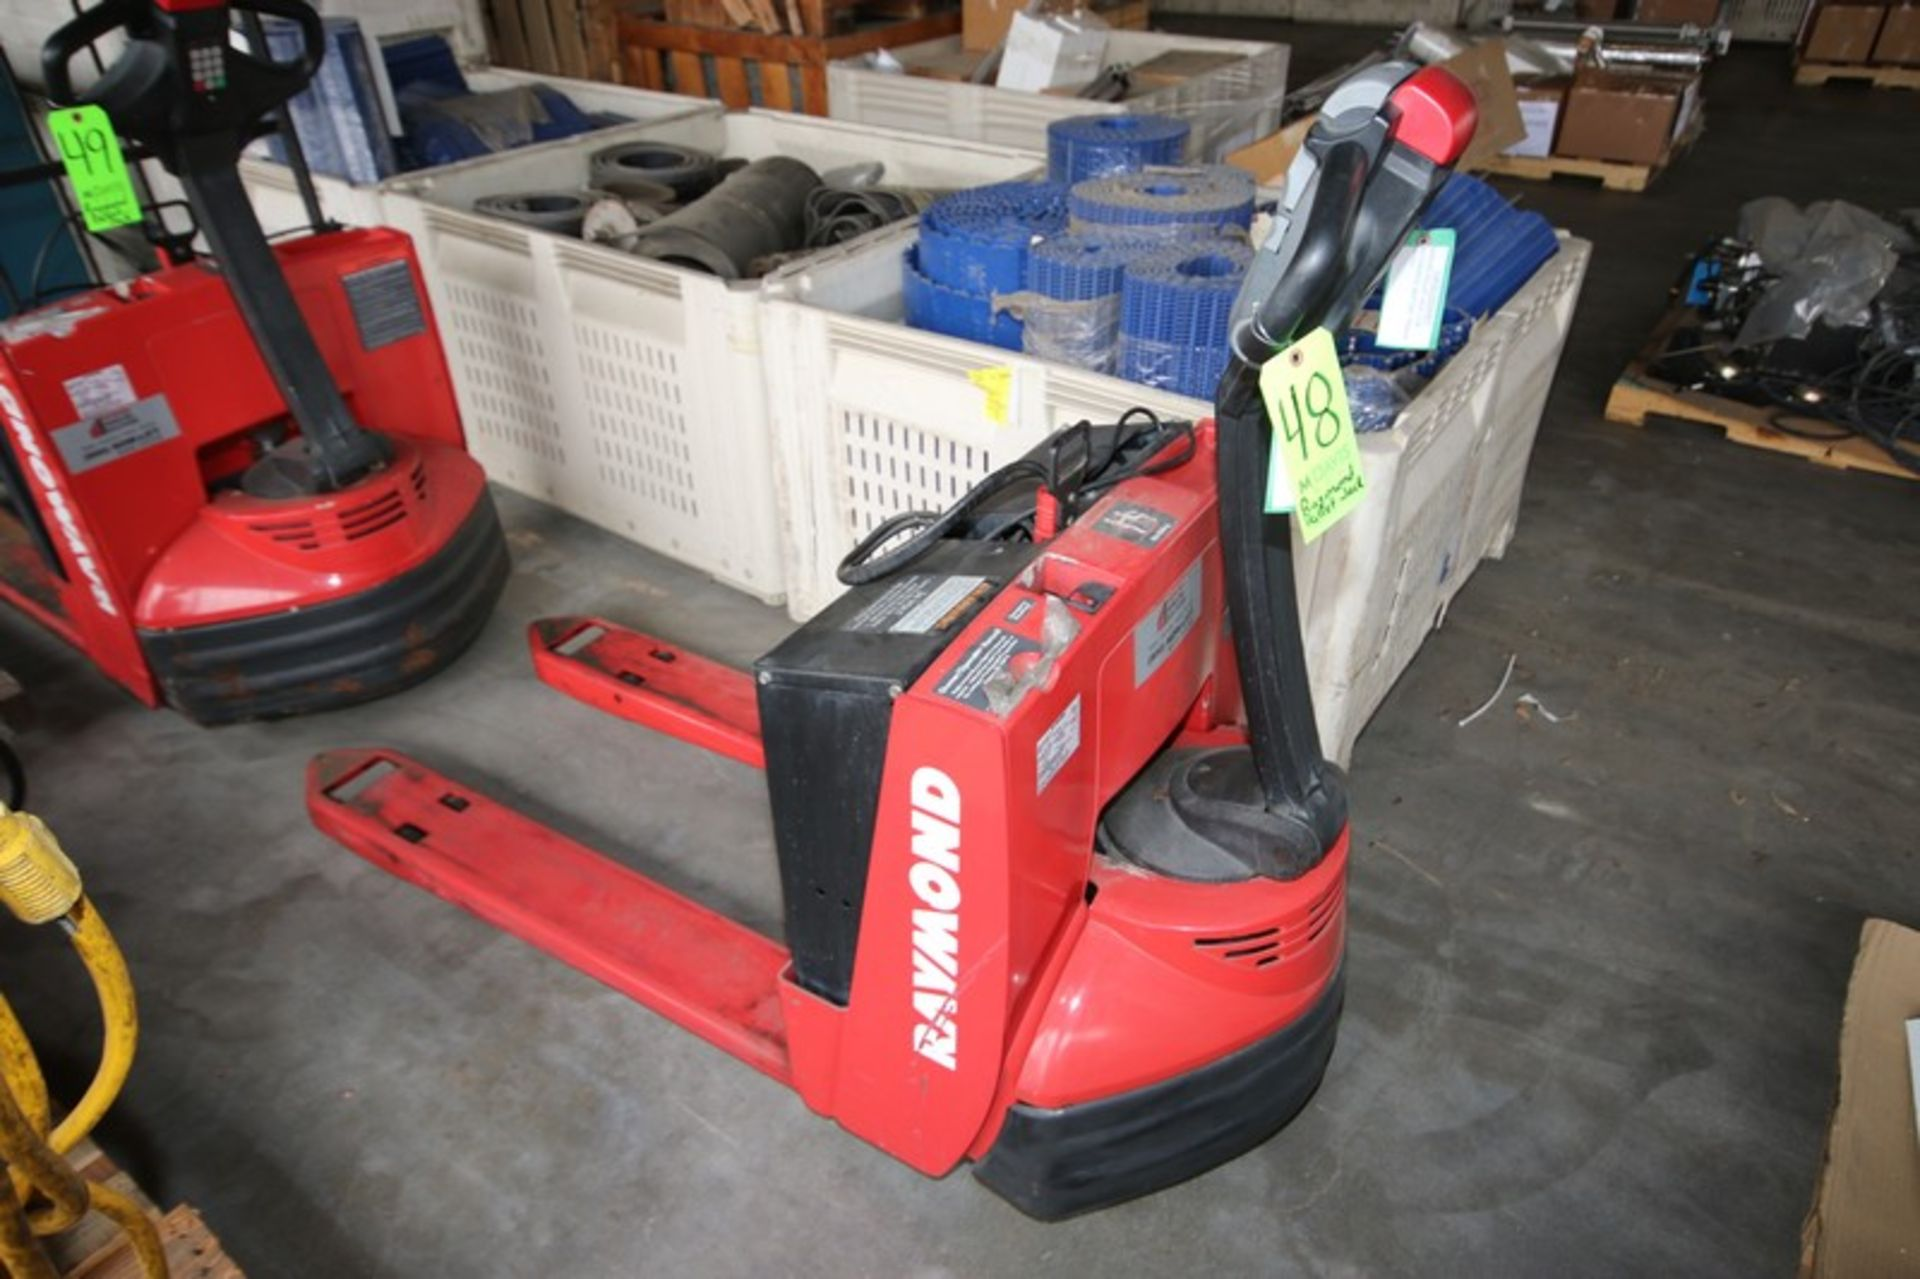 Lot 48 - Raymond 4,500 lb. Electric Pallet Jack, M/N 102T-F45L, S/N 102-06-06226, 24 Volt Battery